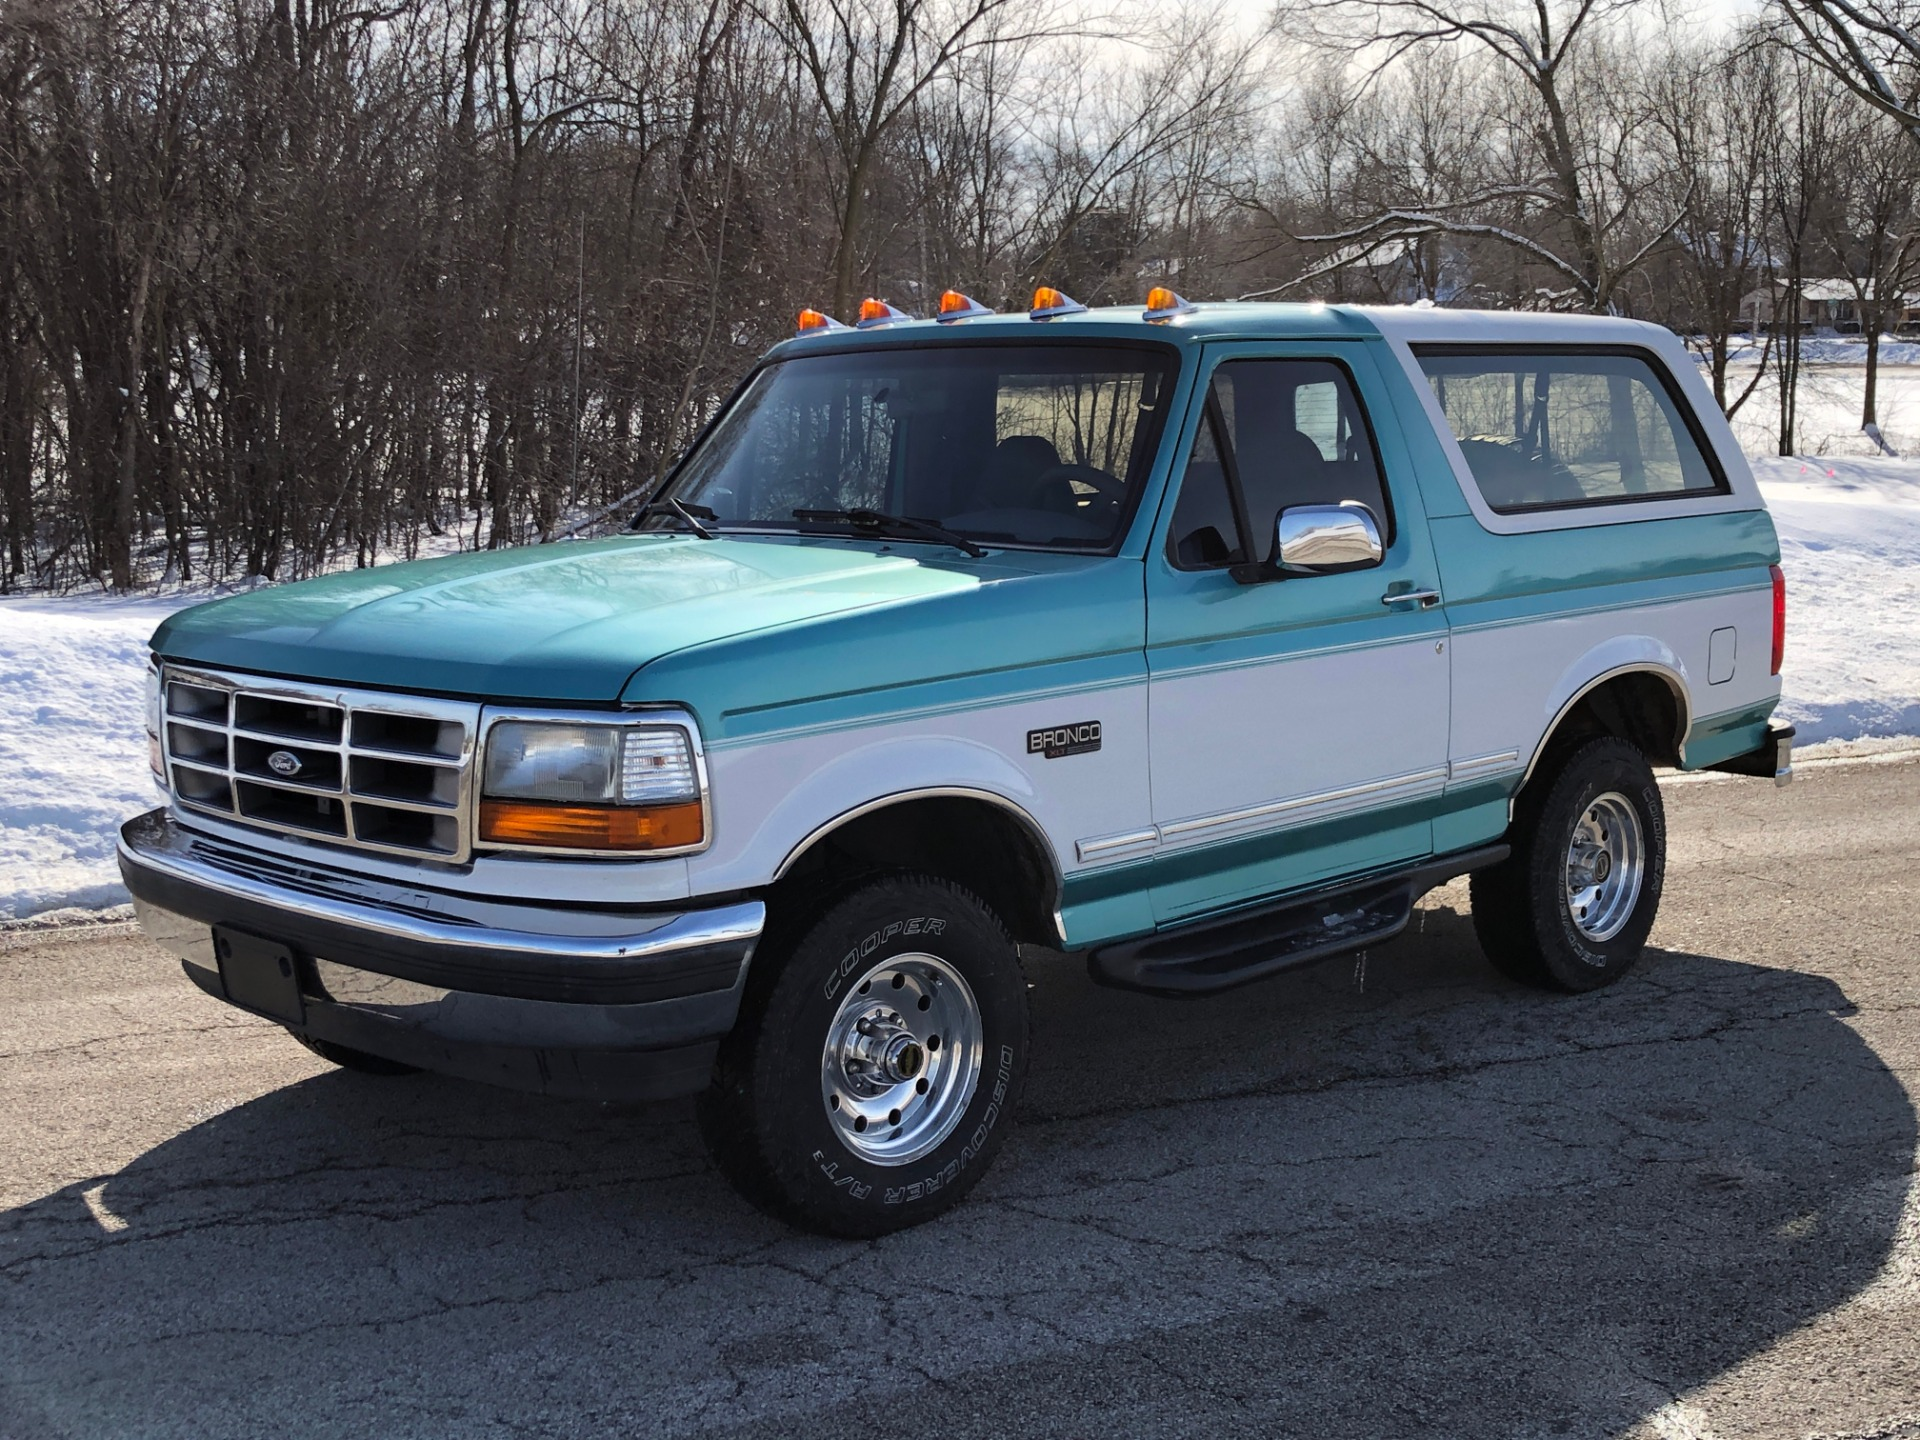 Used 1995 Ford Bronco -XLT SPORT-4x4-ARIZONA RUST FREE-ORIGINAL PAINT- | Mundelein, IL